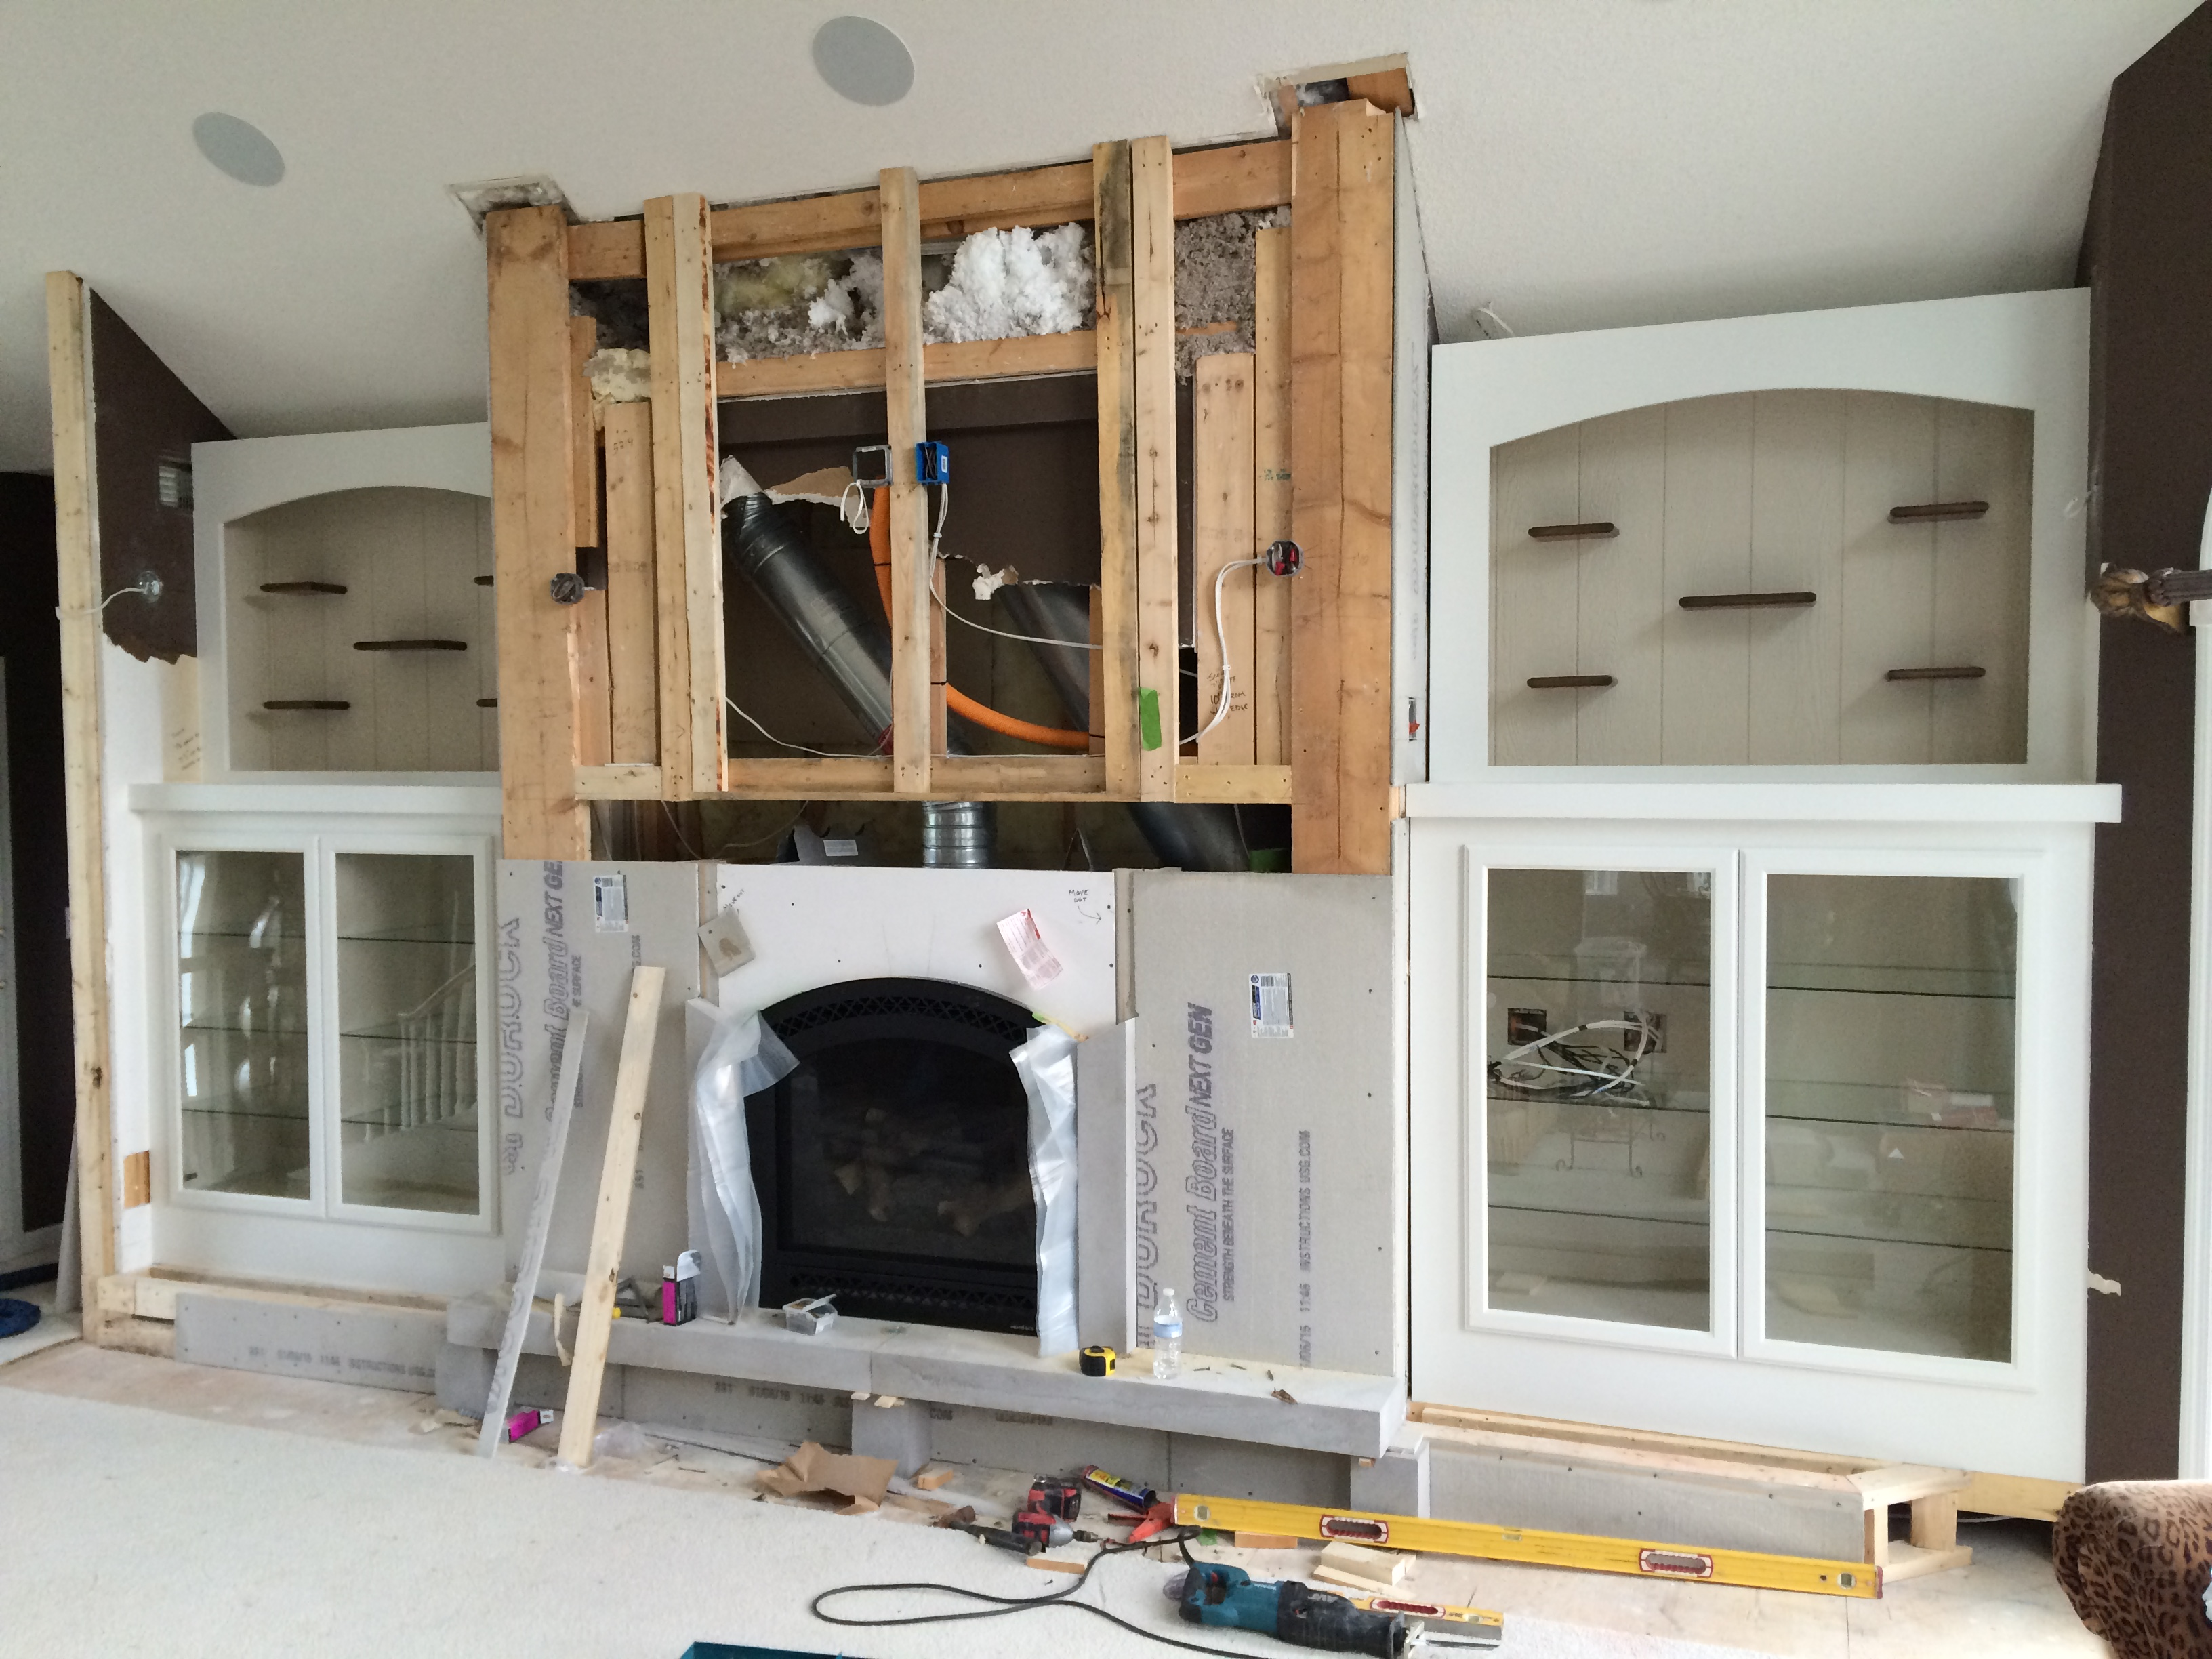 Bon Custom Fireplace Cabinetry Built Ins Floating Shelves Stillwater MN